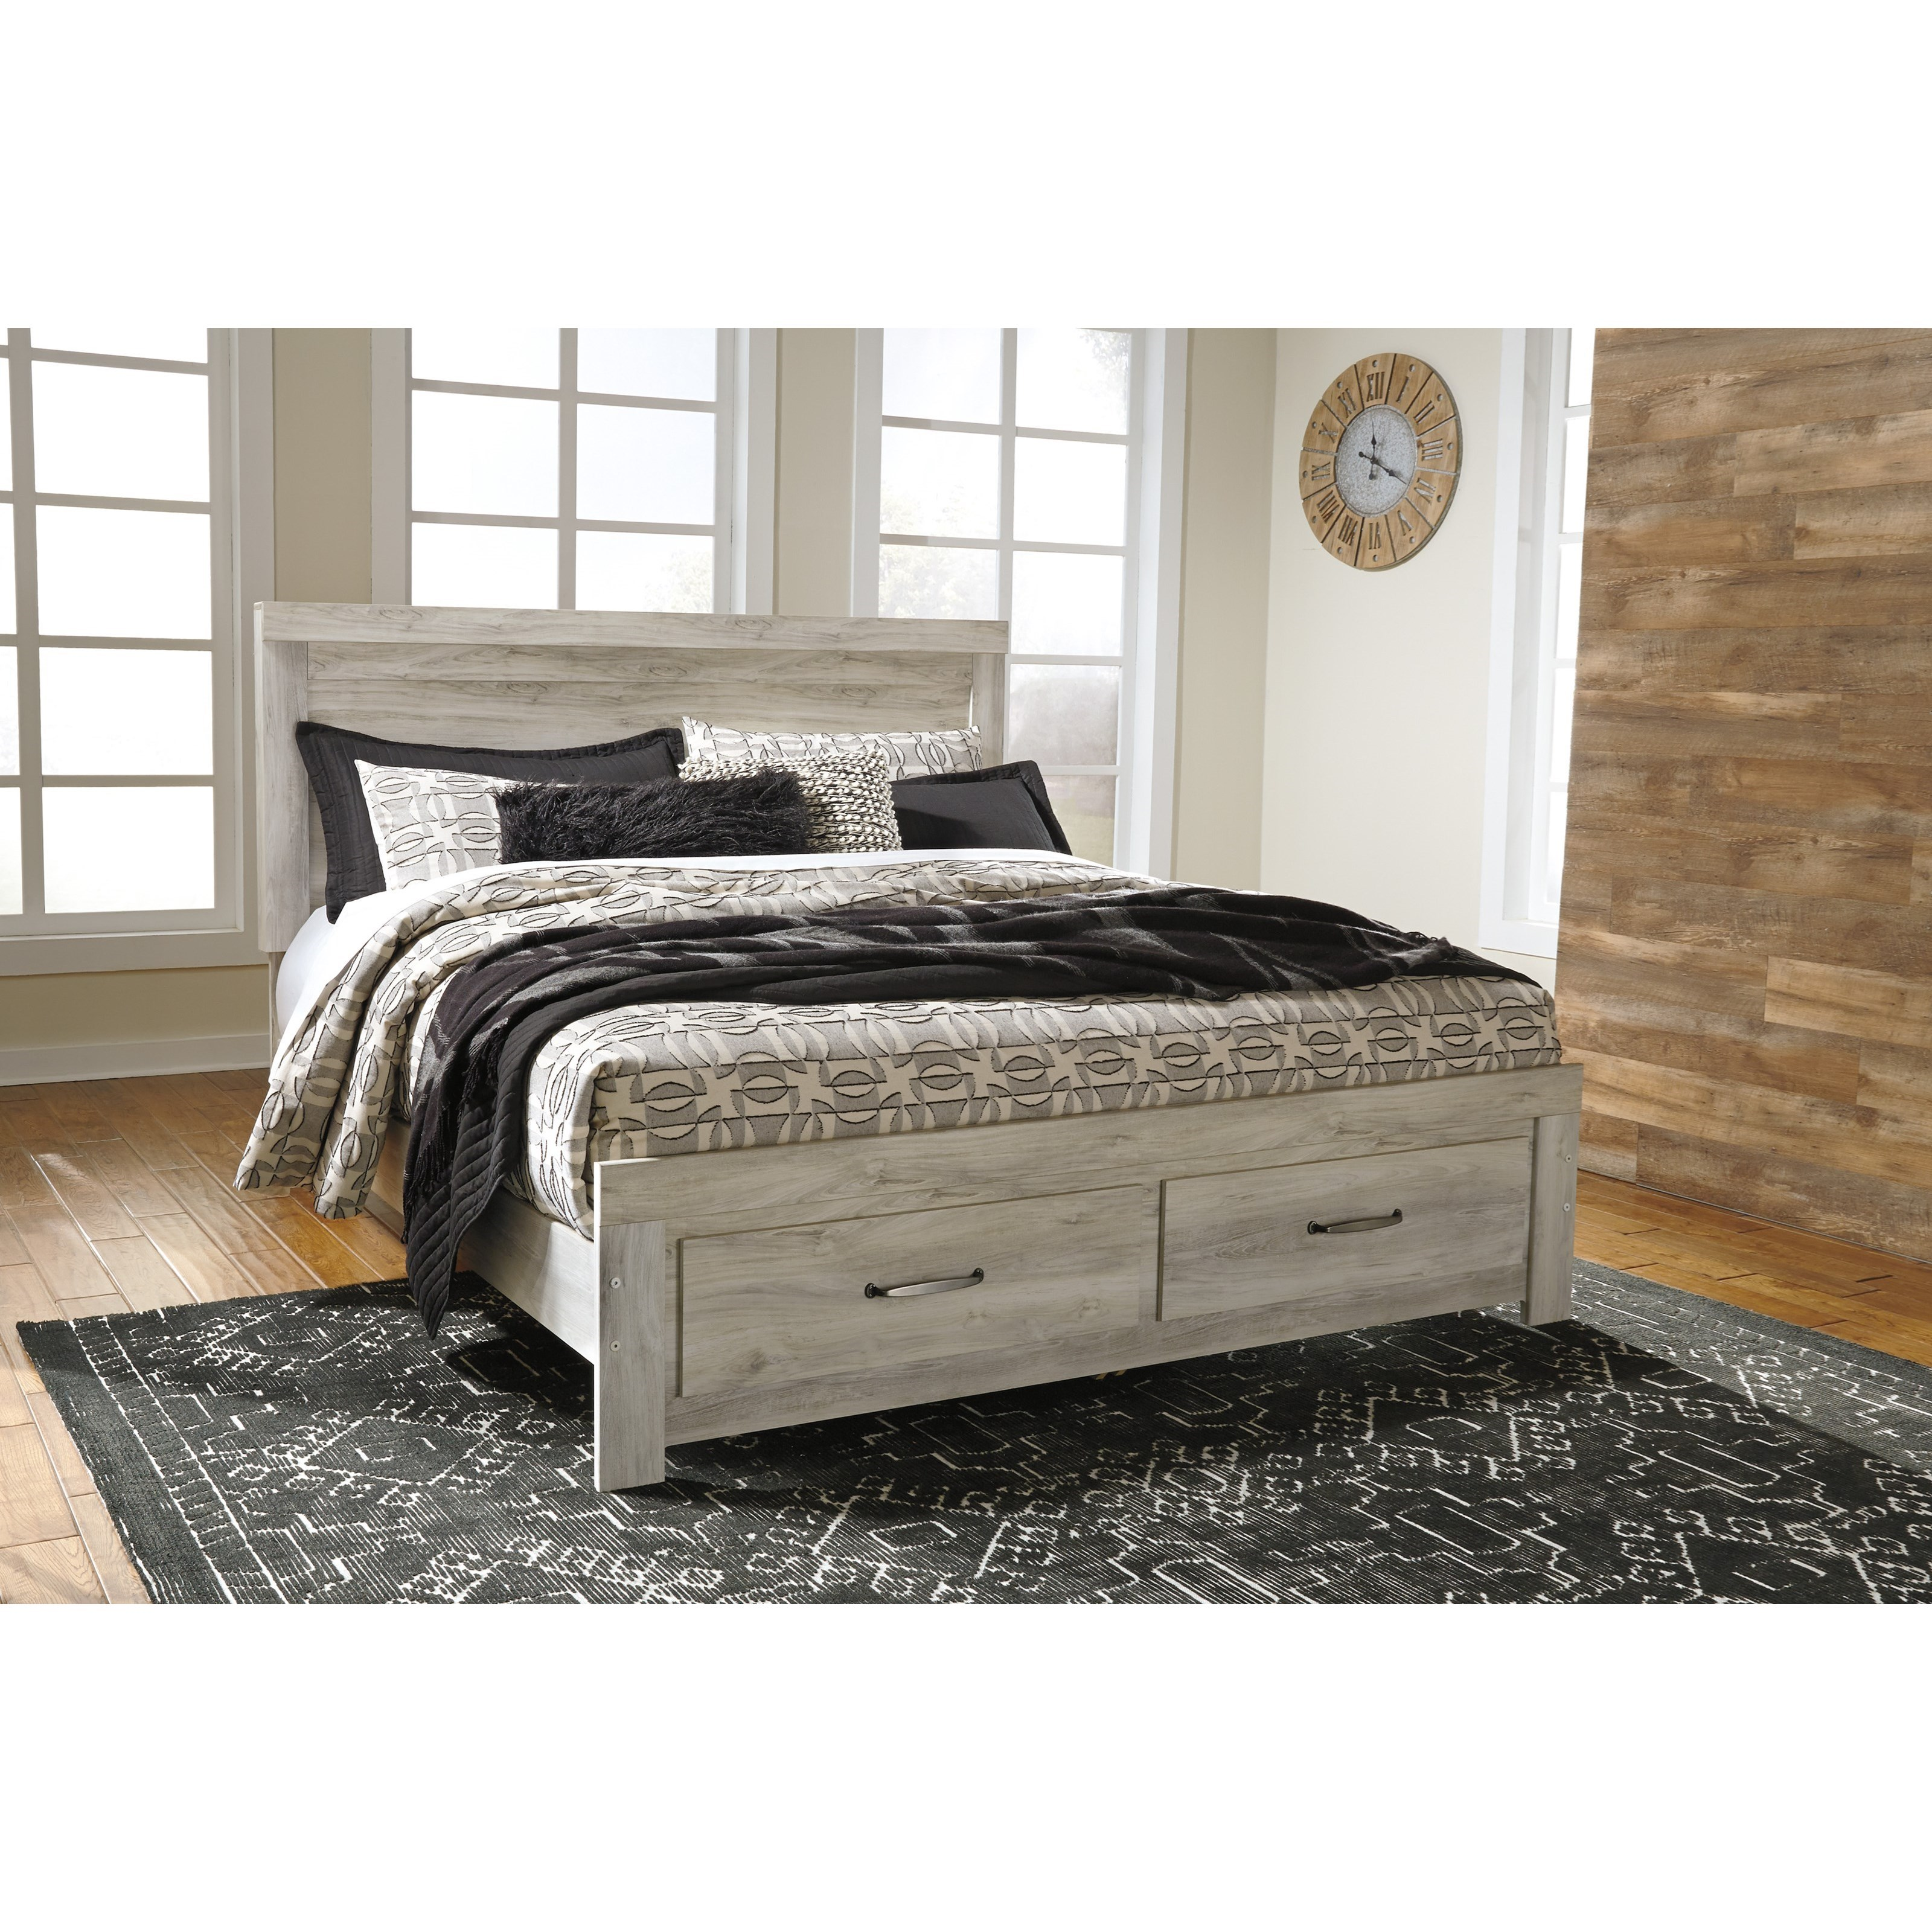 King Panel Bed with Storage Footboard